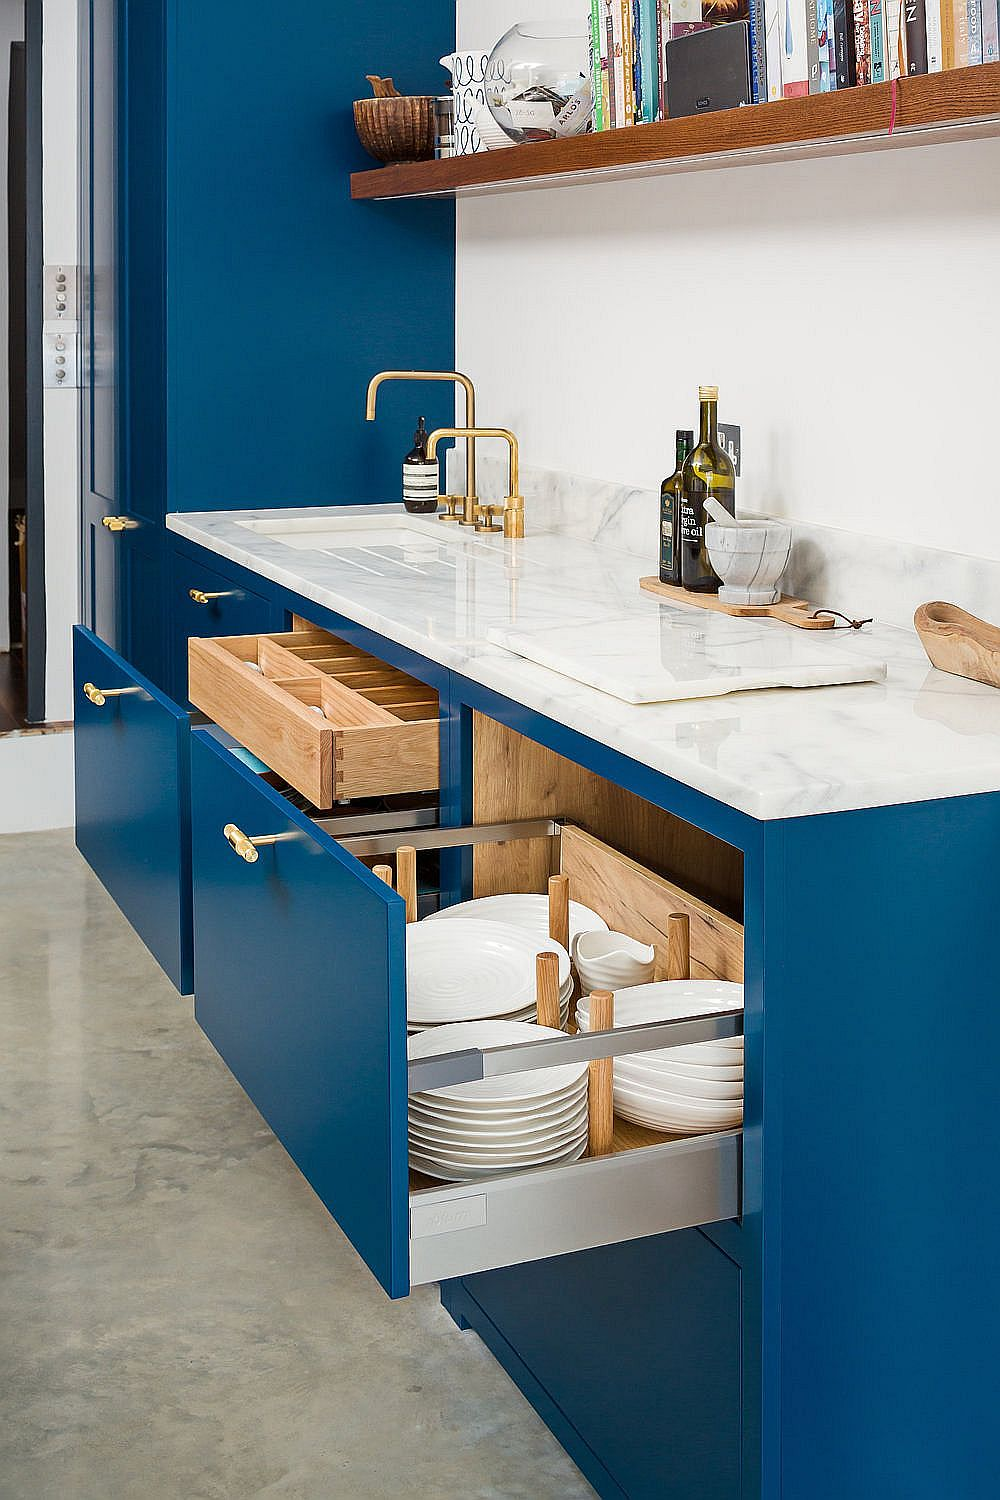 Custom designed workstation and drawers add to the functionality of this beautiful navy blue kitchen